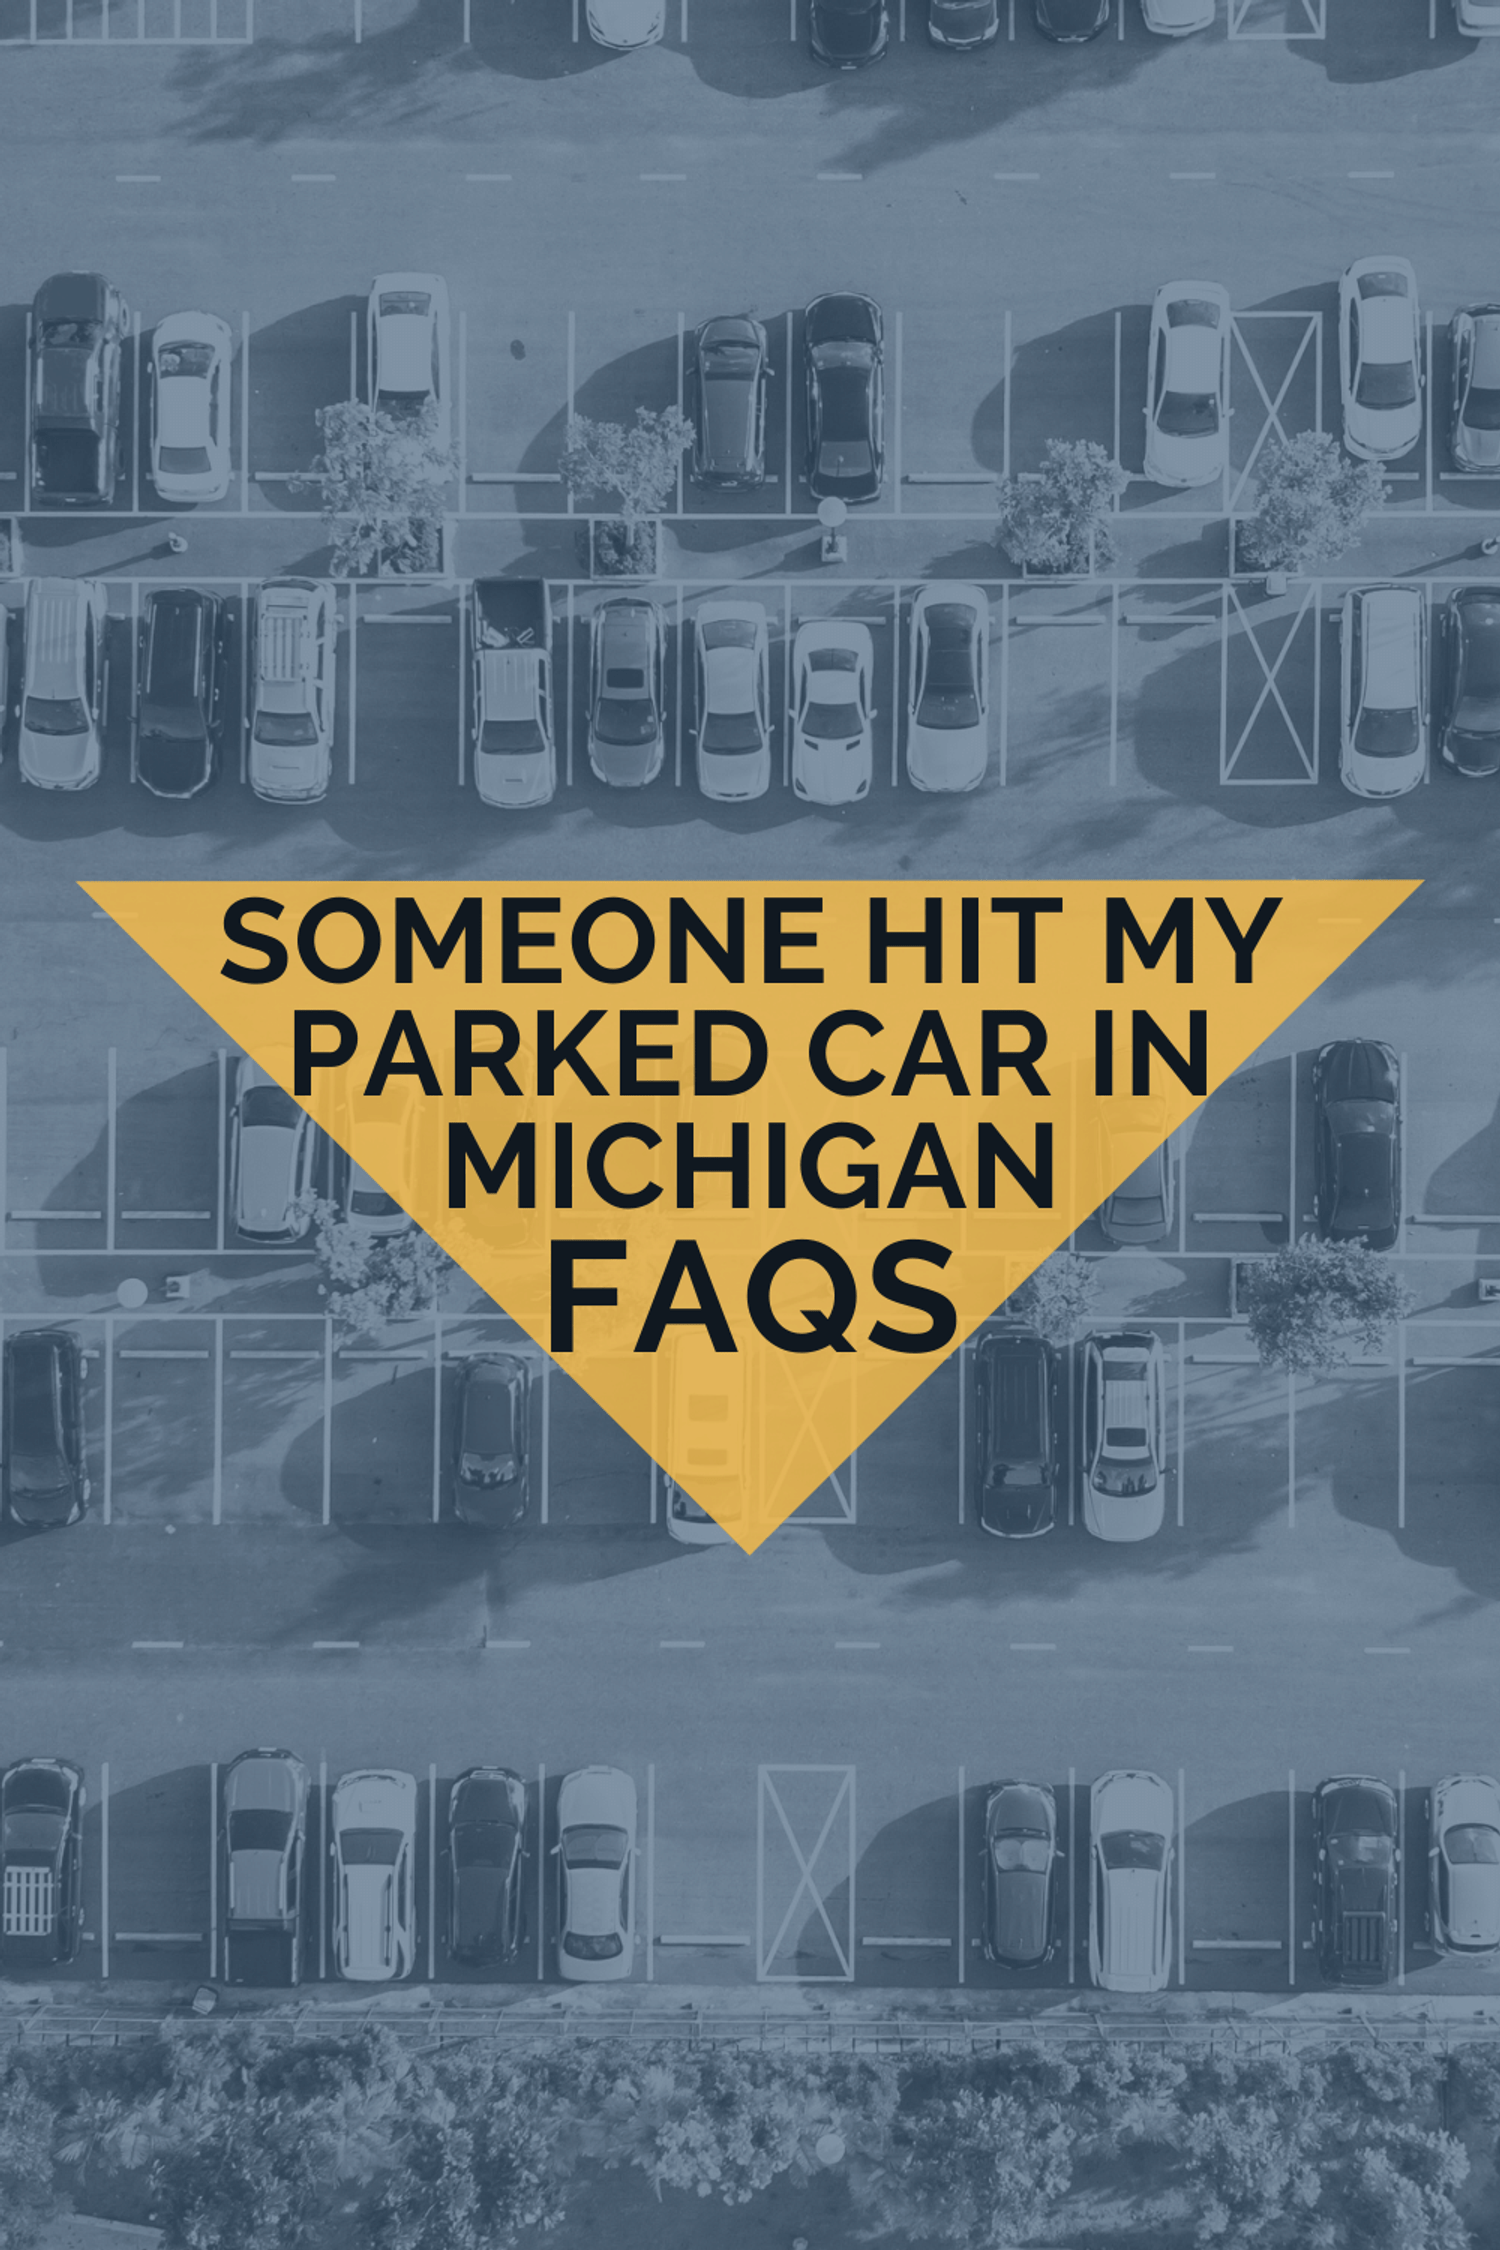 Someone Hit My Parked Car: What You Need To Know